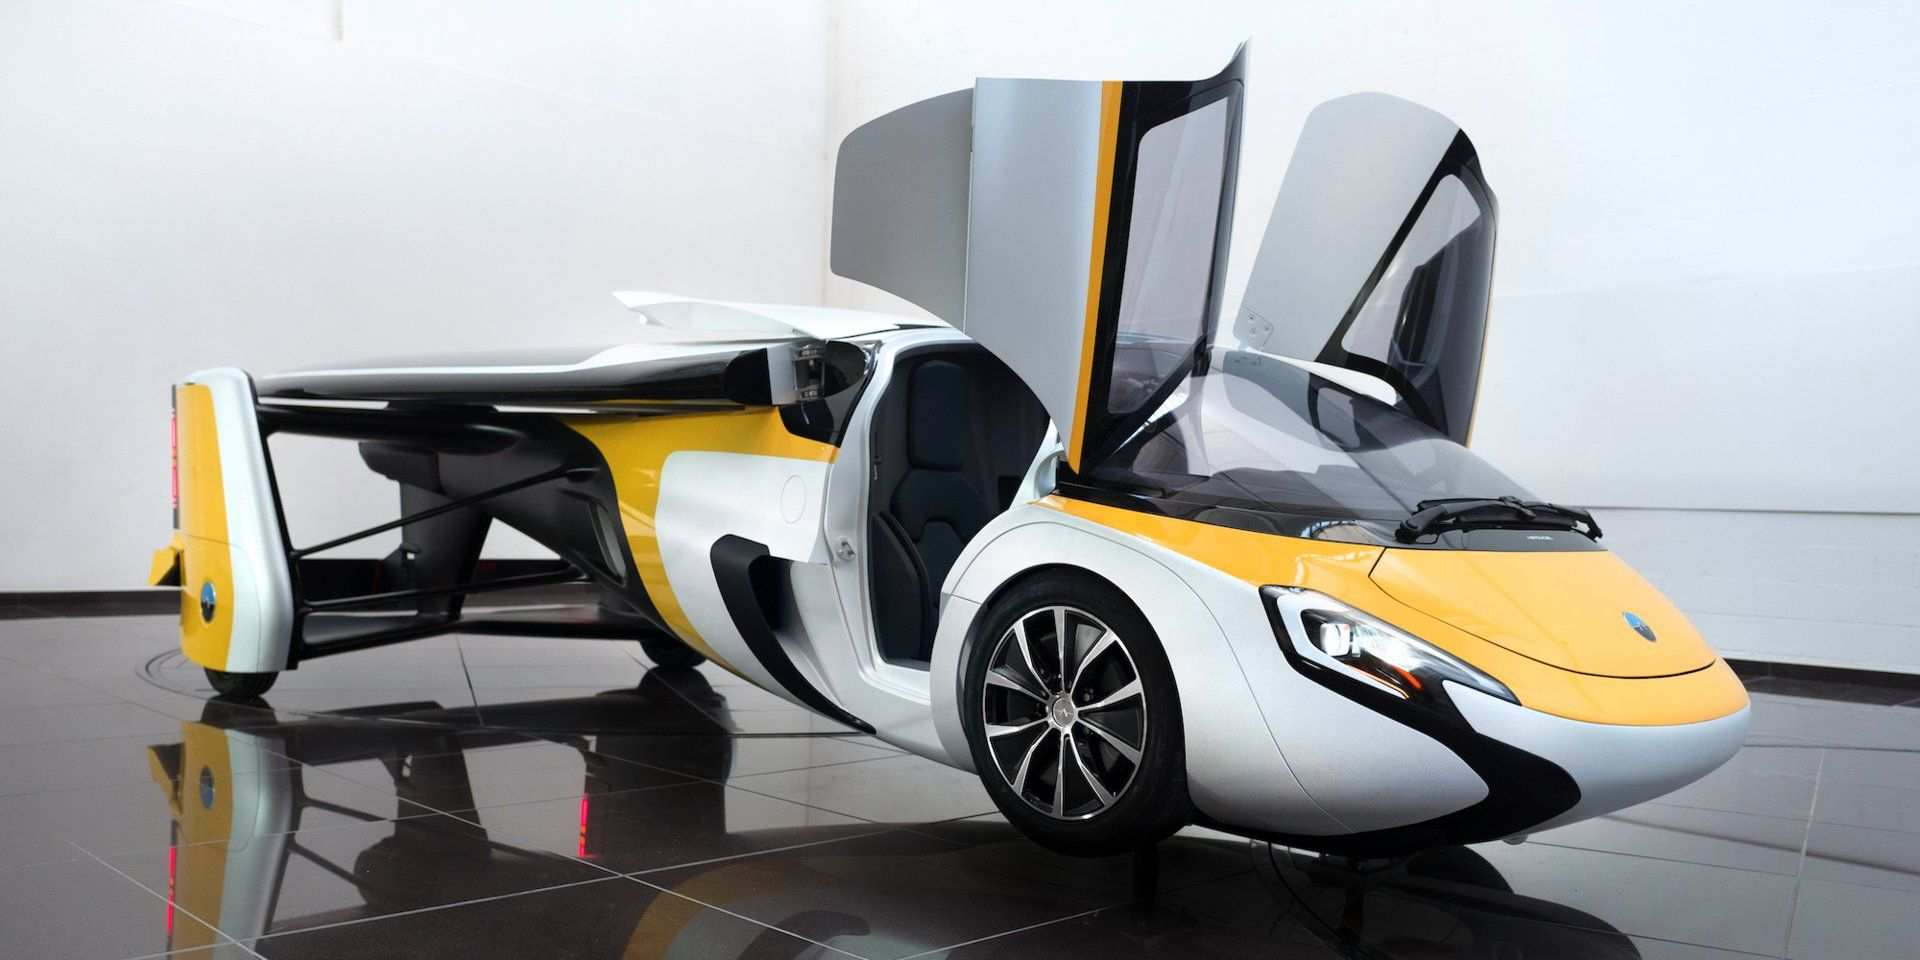 25 Great The Volvo Flying Car 2019 Engine Overview for The Volvo Flying Car 2019 Engine